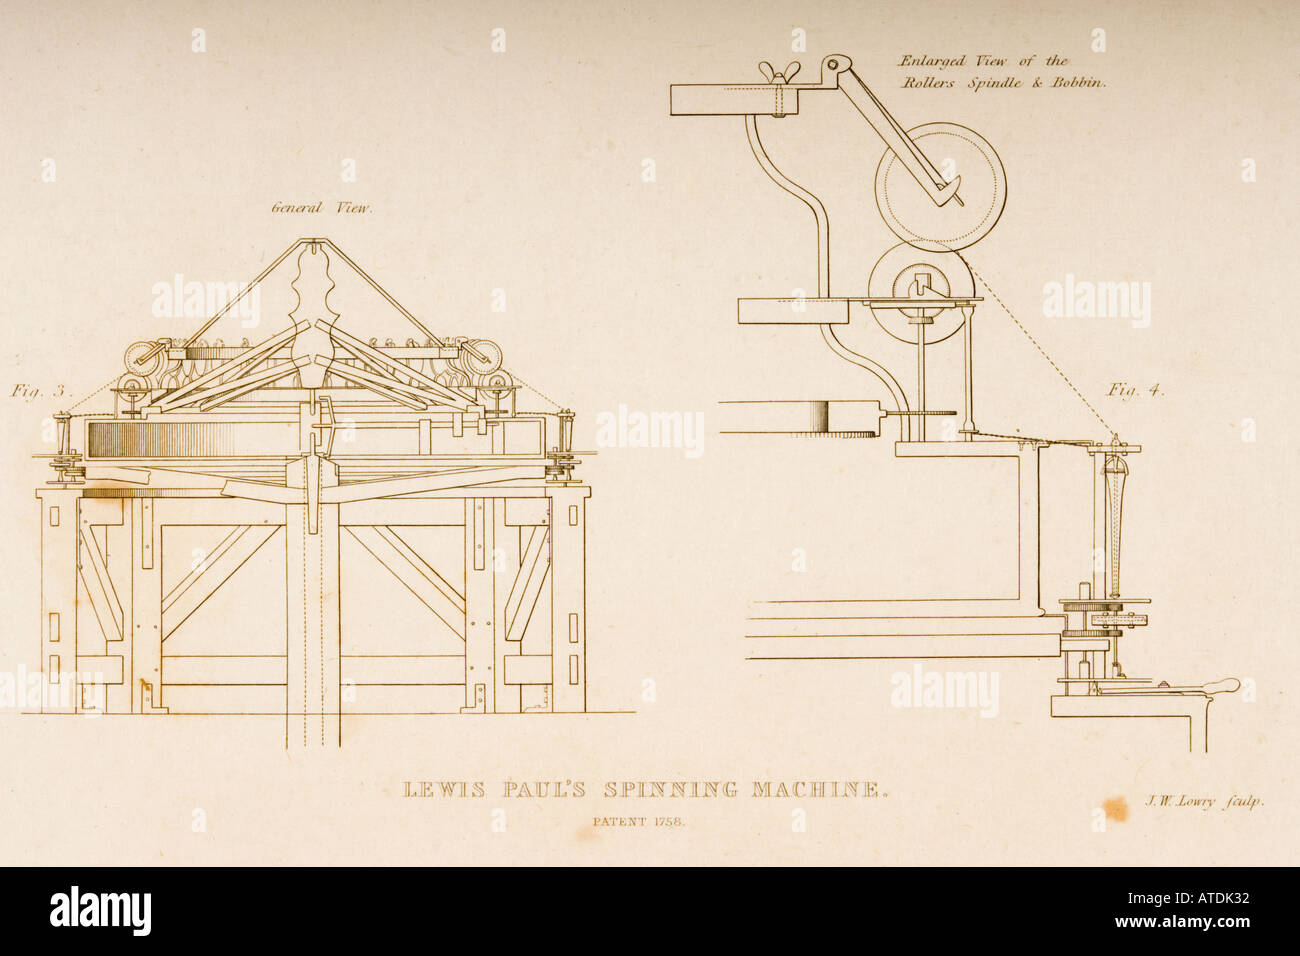 2c31d561 Drawings of Lewis Paul s Spinning Machiner patented 1758 - Stock Image